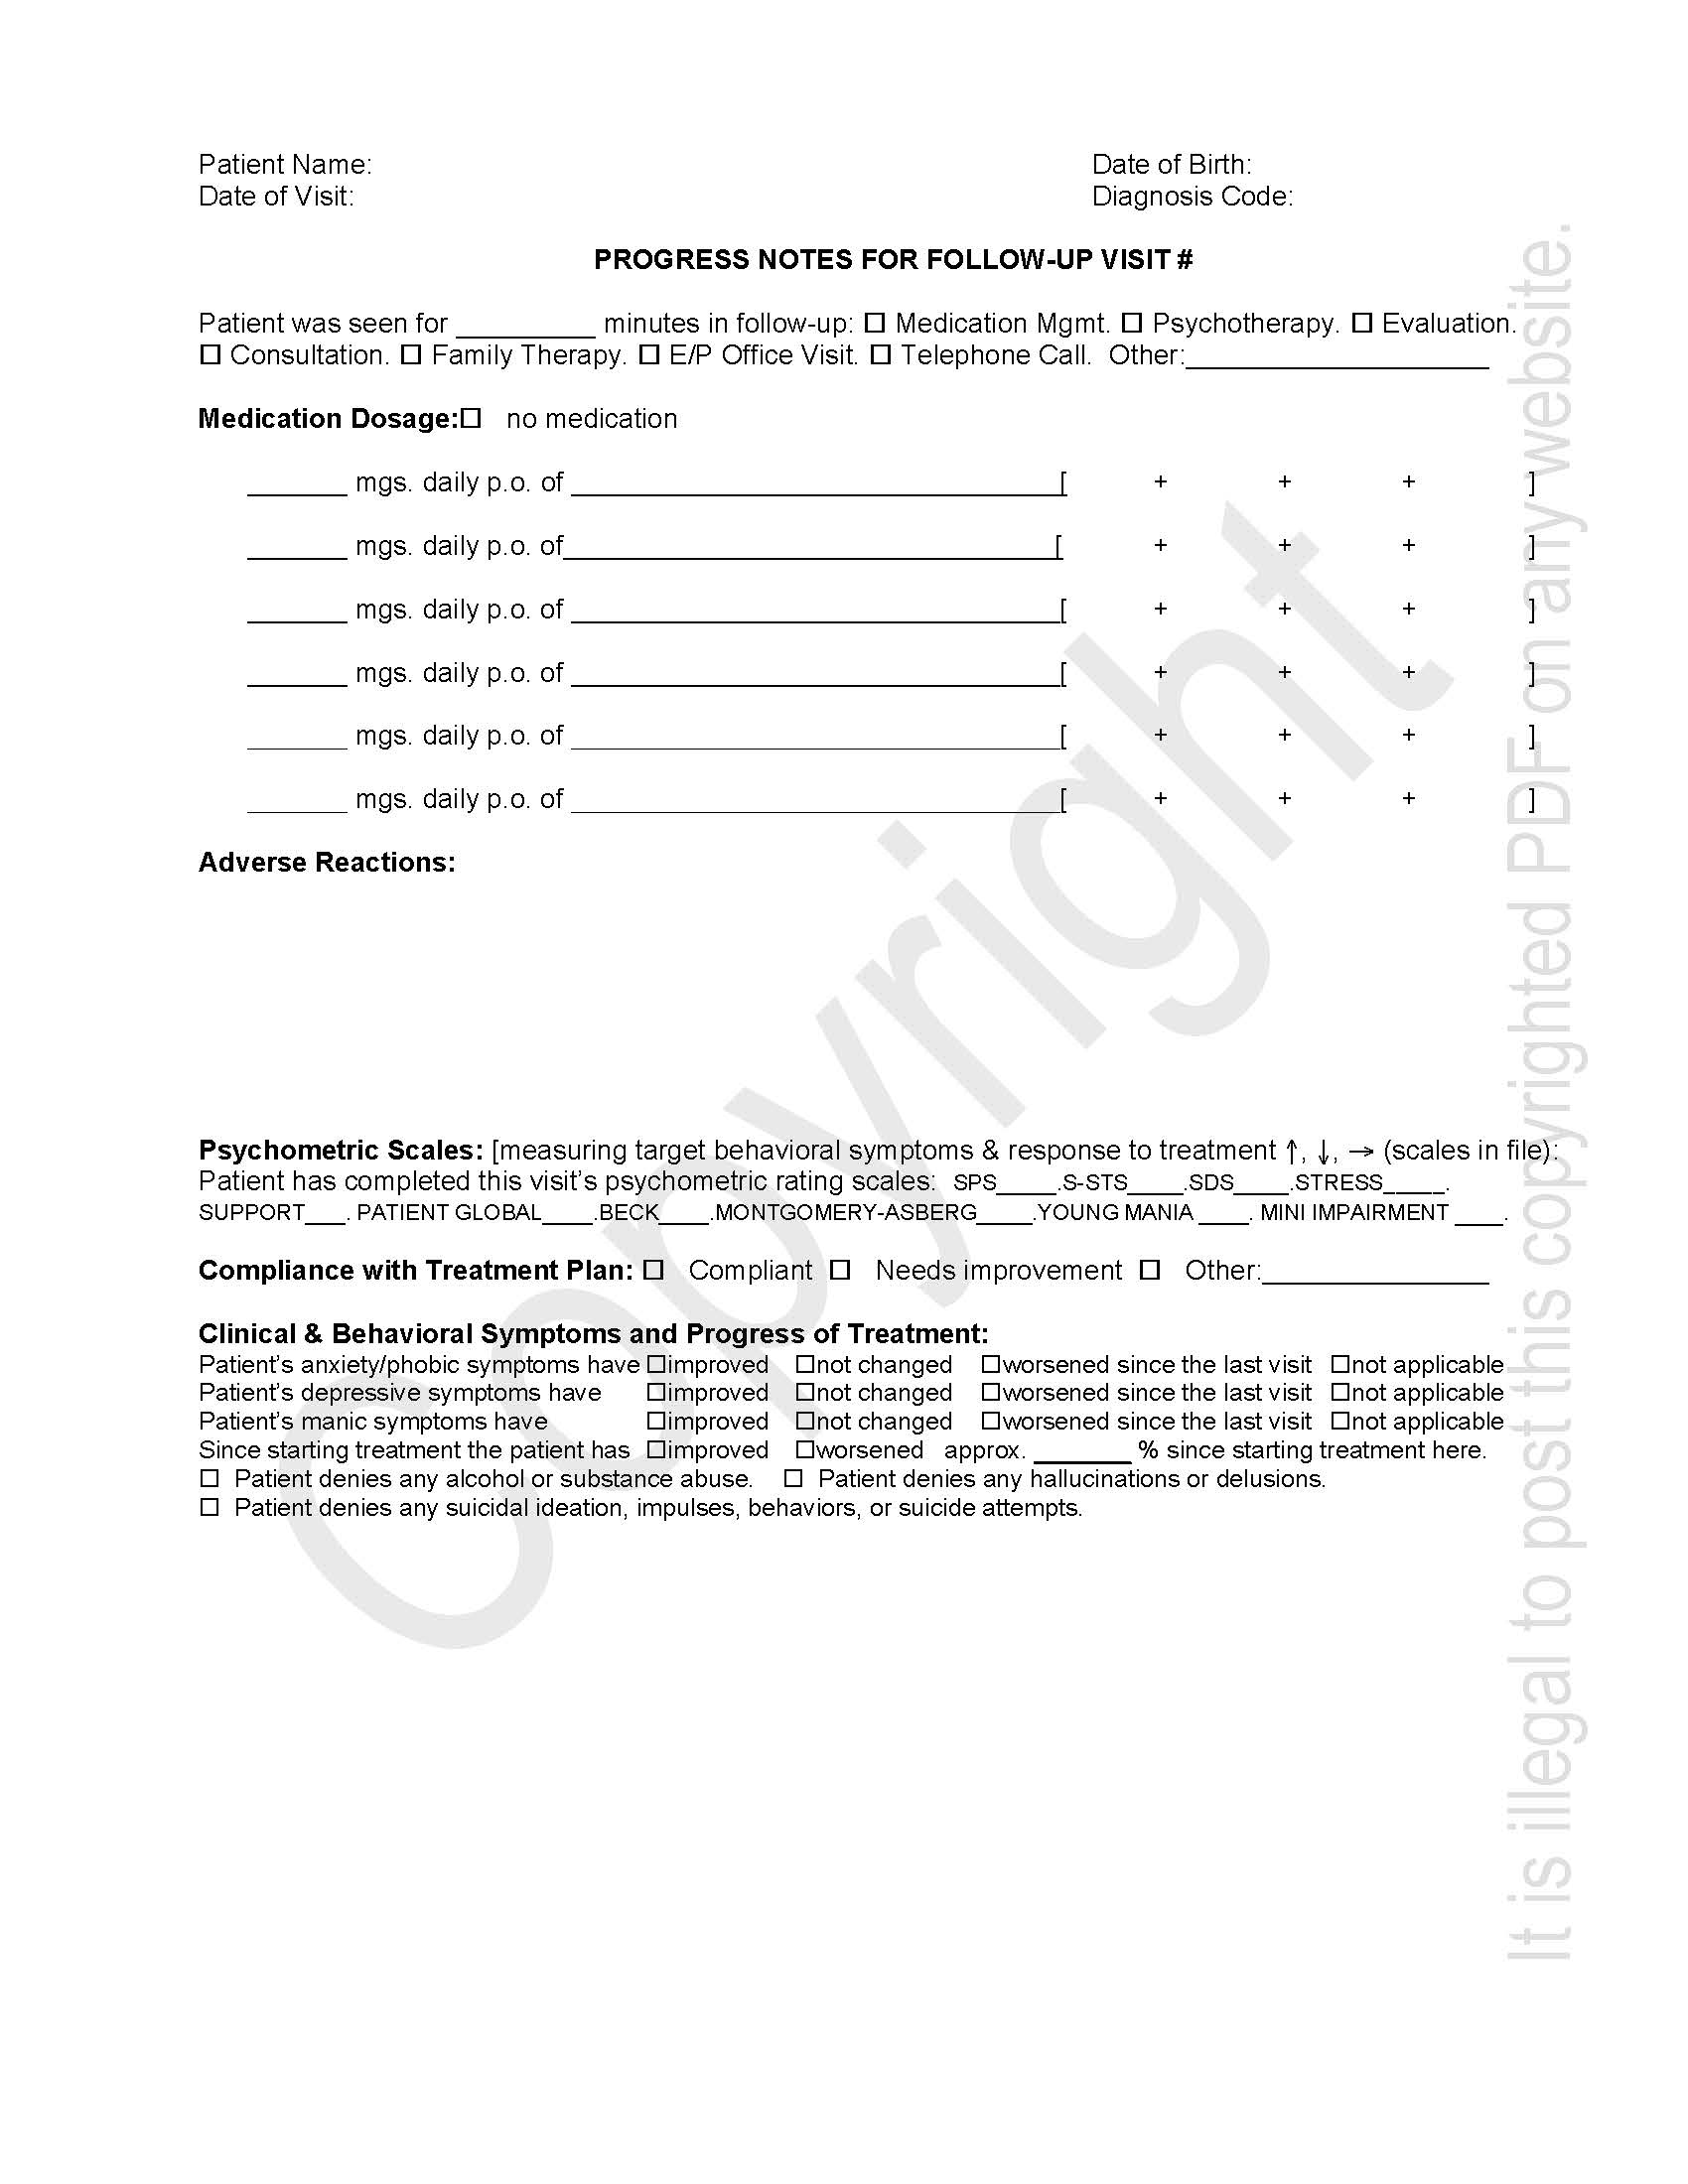 Psychiatric Progress Note Template. 8086990 lecture notes for ...